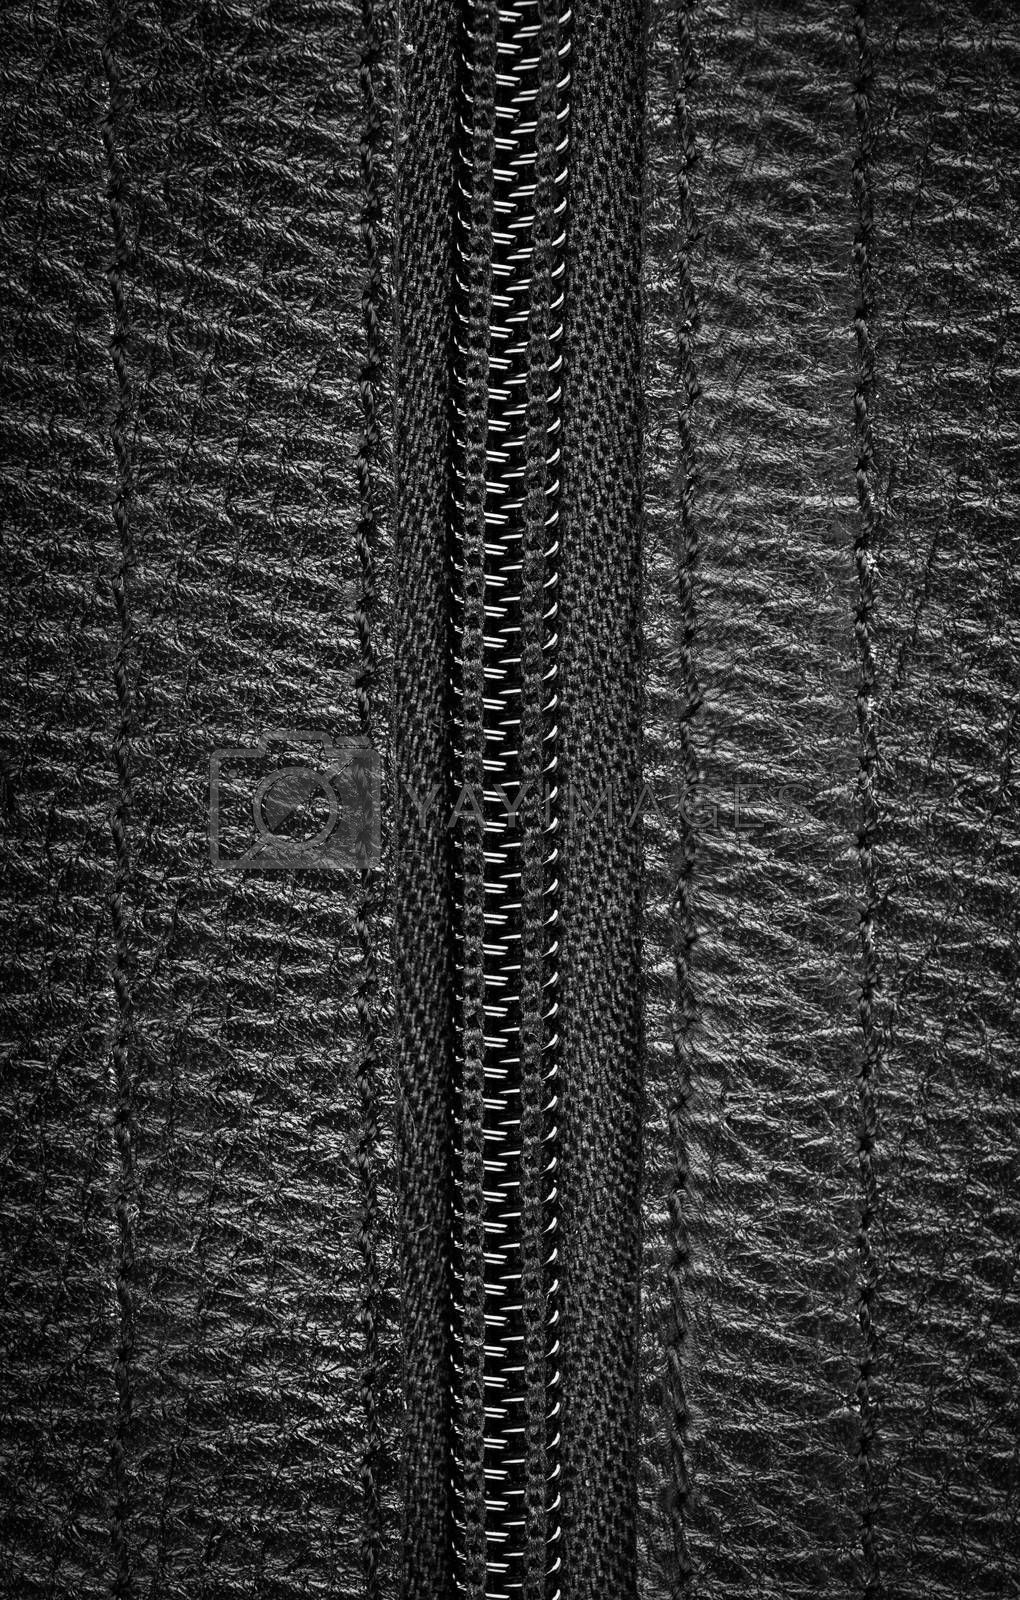 Close-up view of a closed zipper on a black leather bag